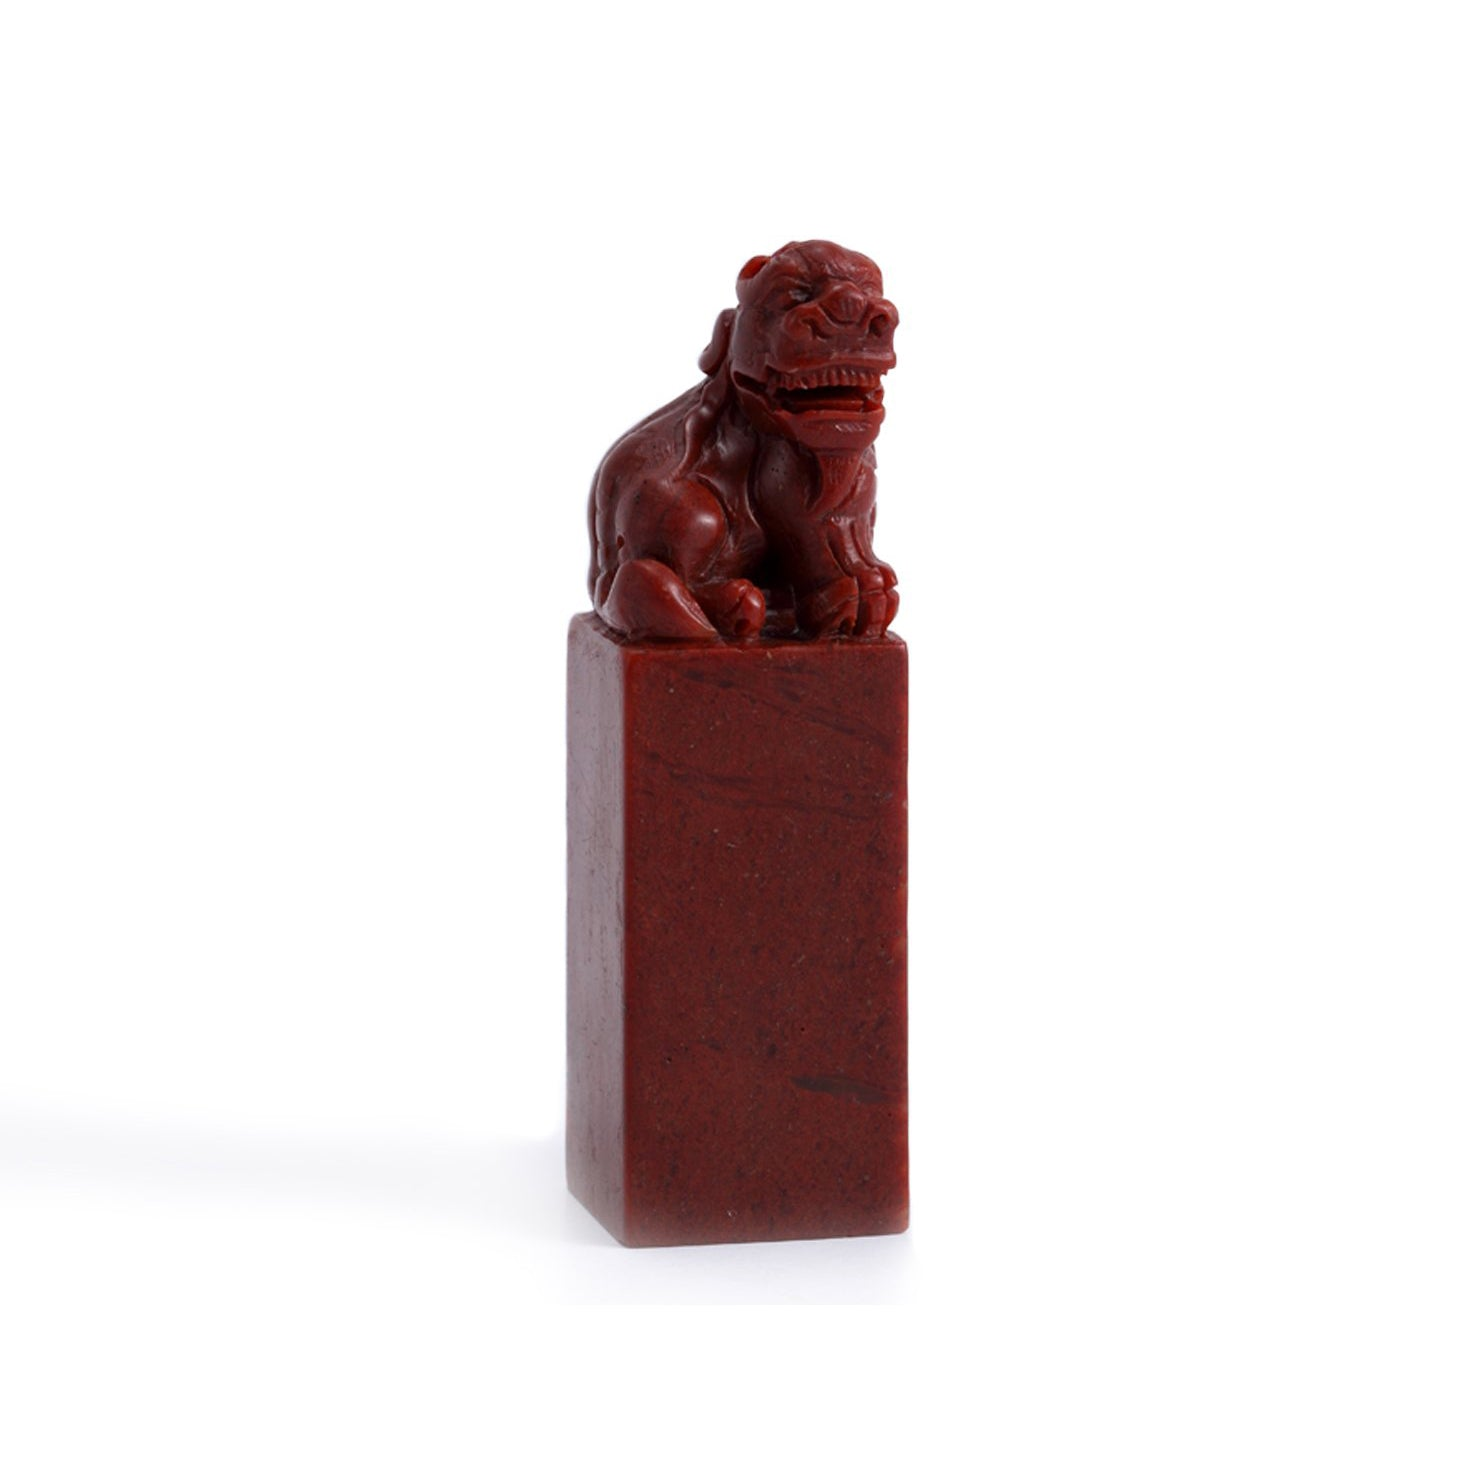 PIXIU HEAD MOUNTAIN RED - Collectors Seal Stone for Seal Carving